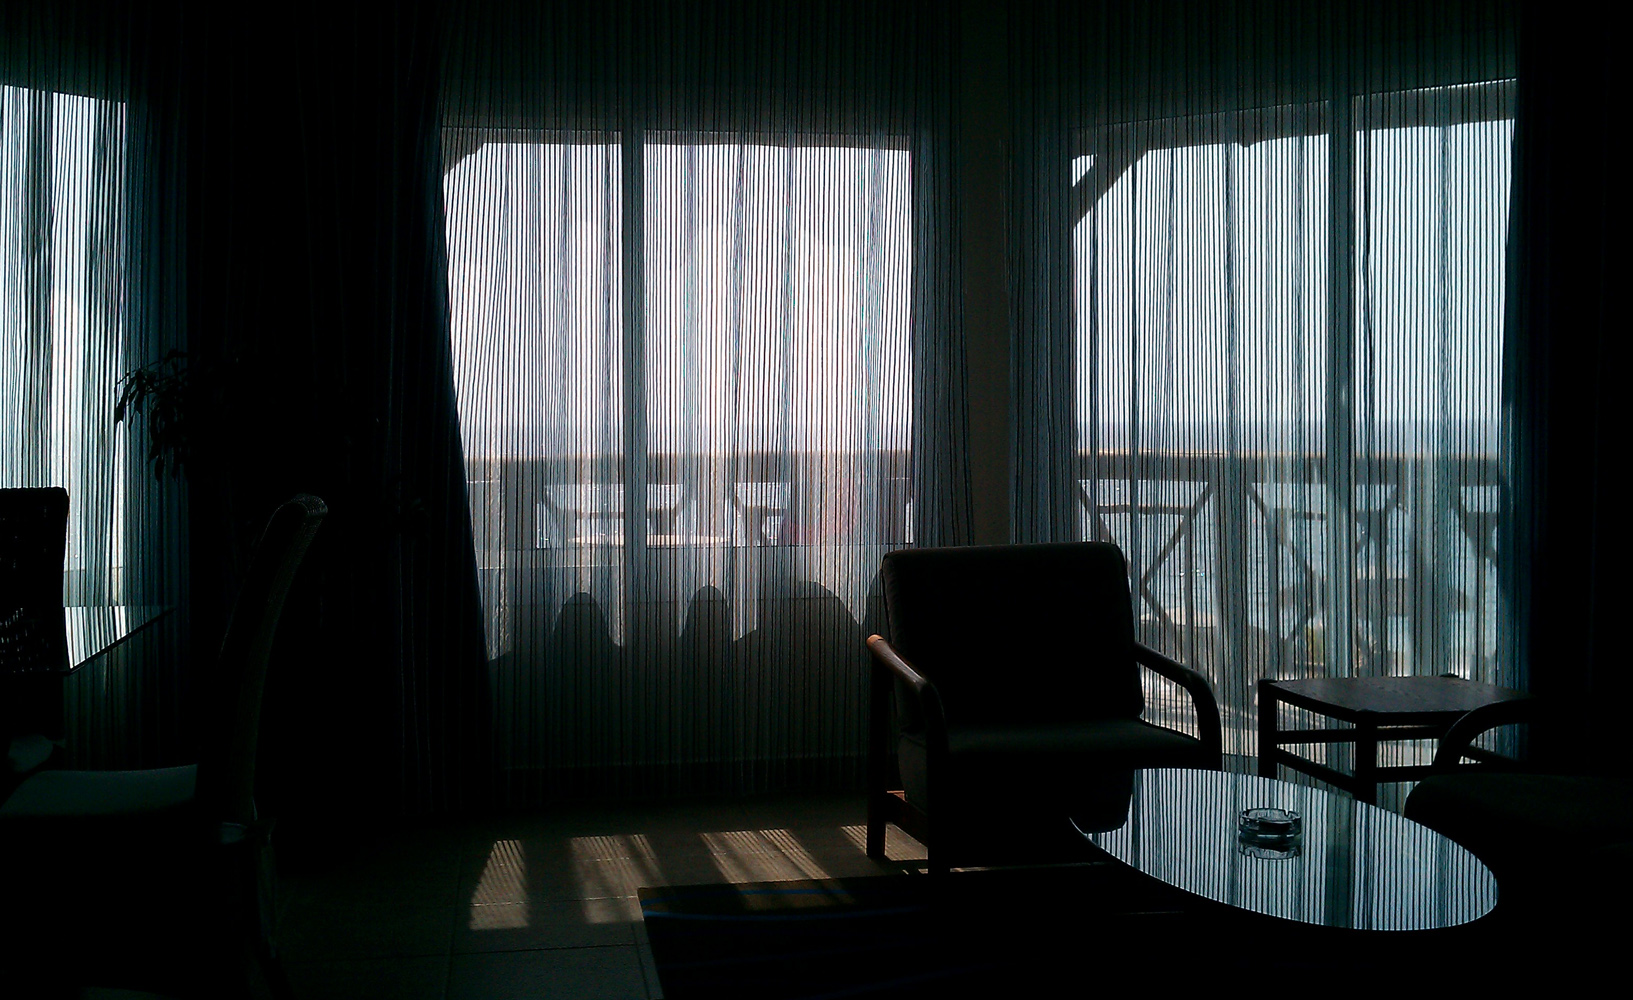 Hotel Life - From my window - The ocean, Dibba Al-Fujaira, UAEh